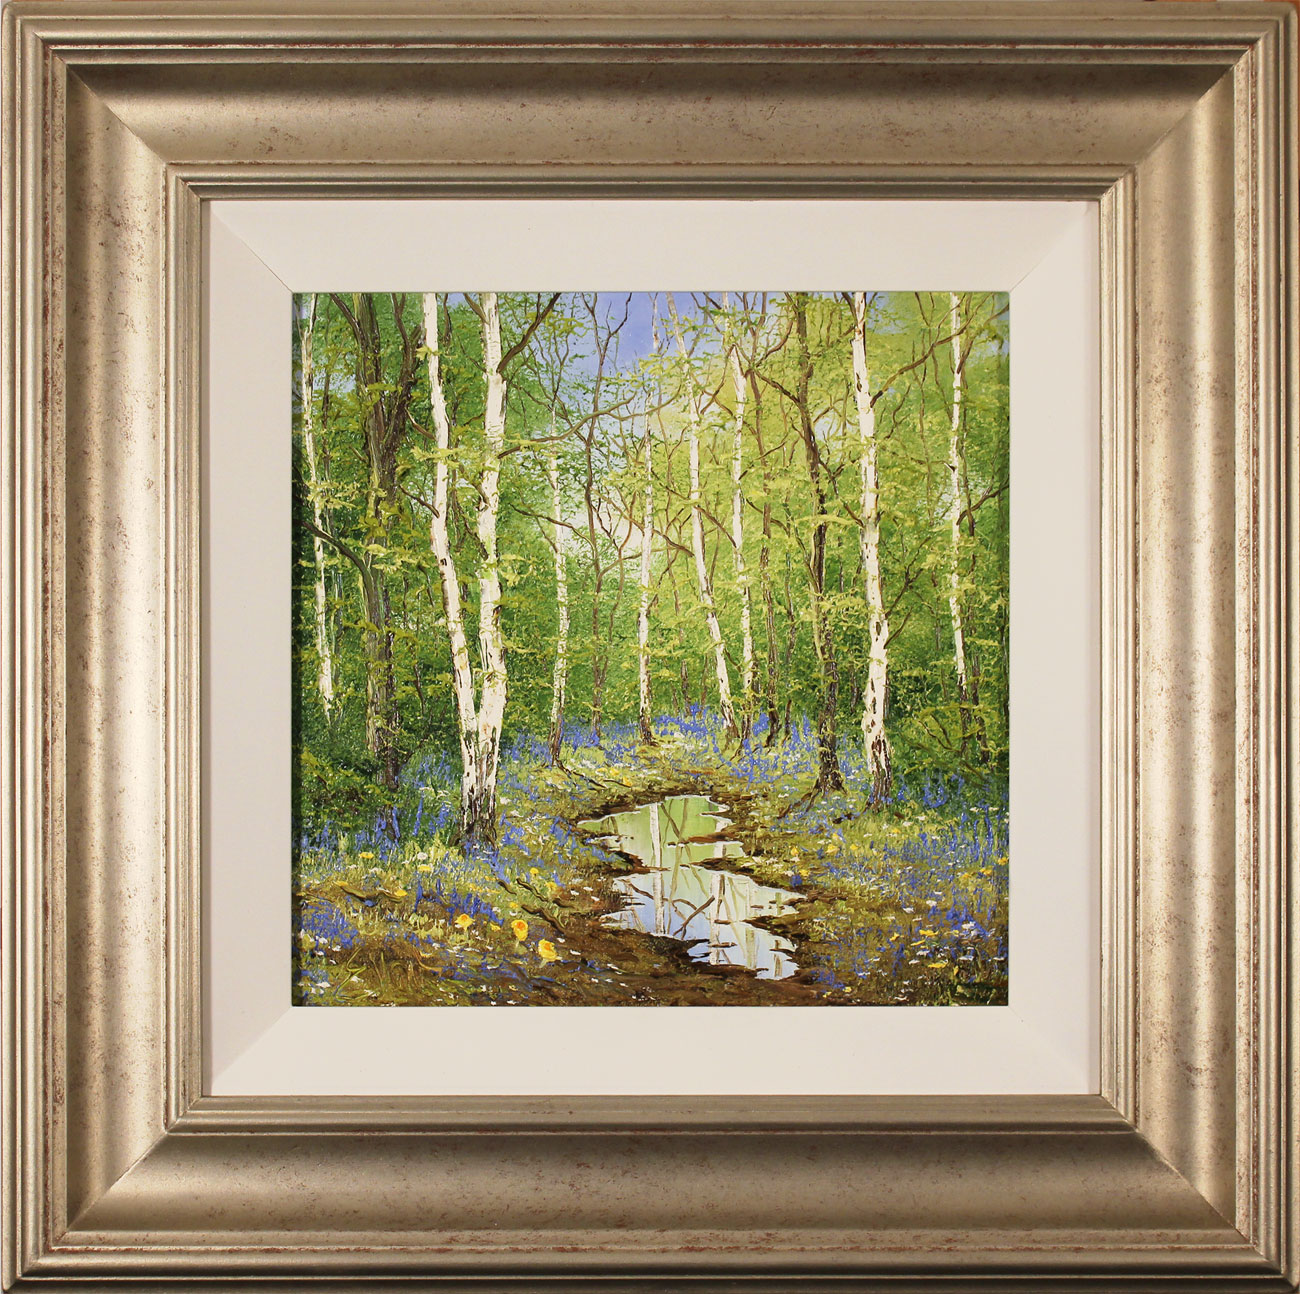 Terry Evans, Original oil painting on canvas, Forgotten Forest, click to enlarge